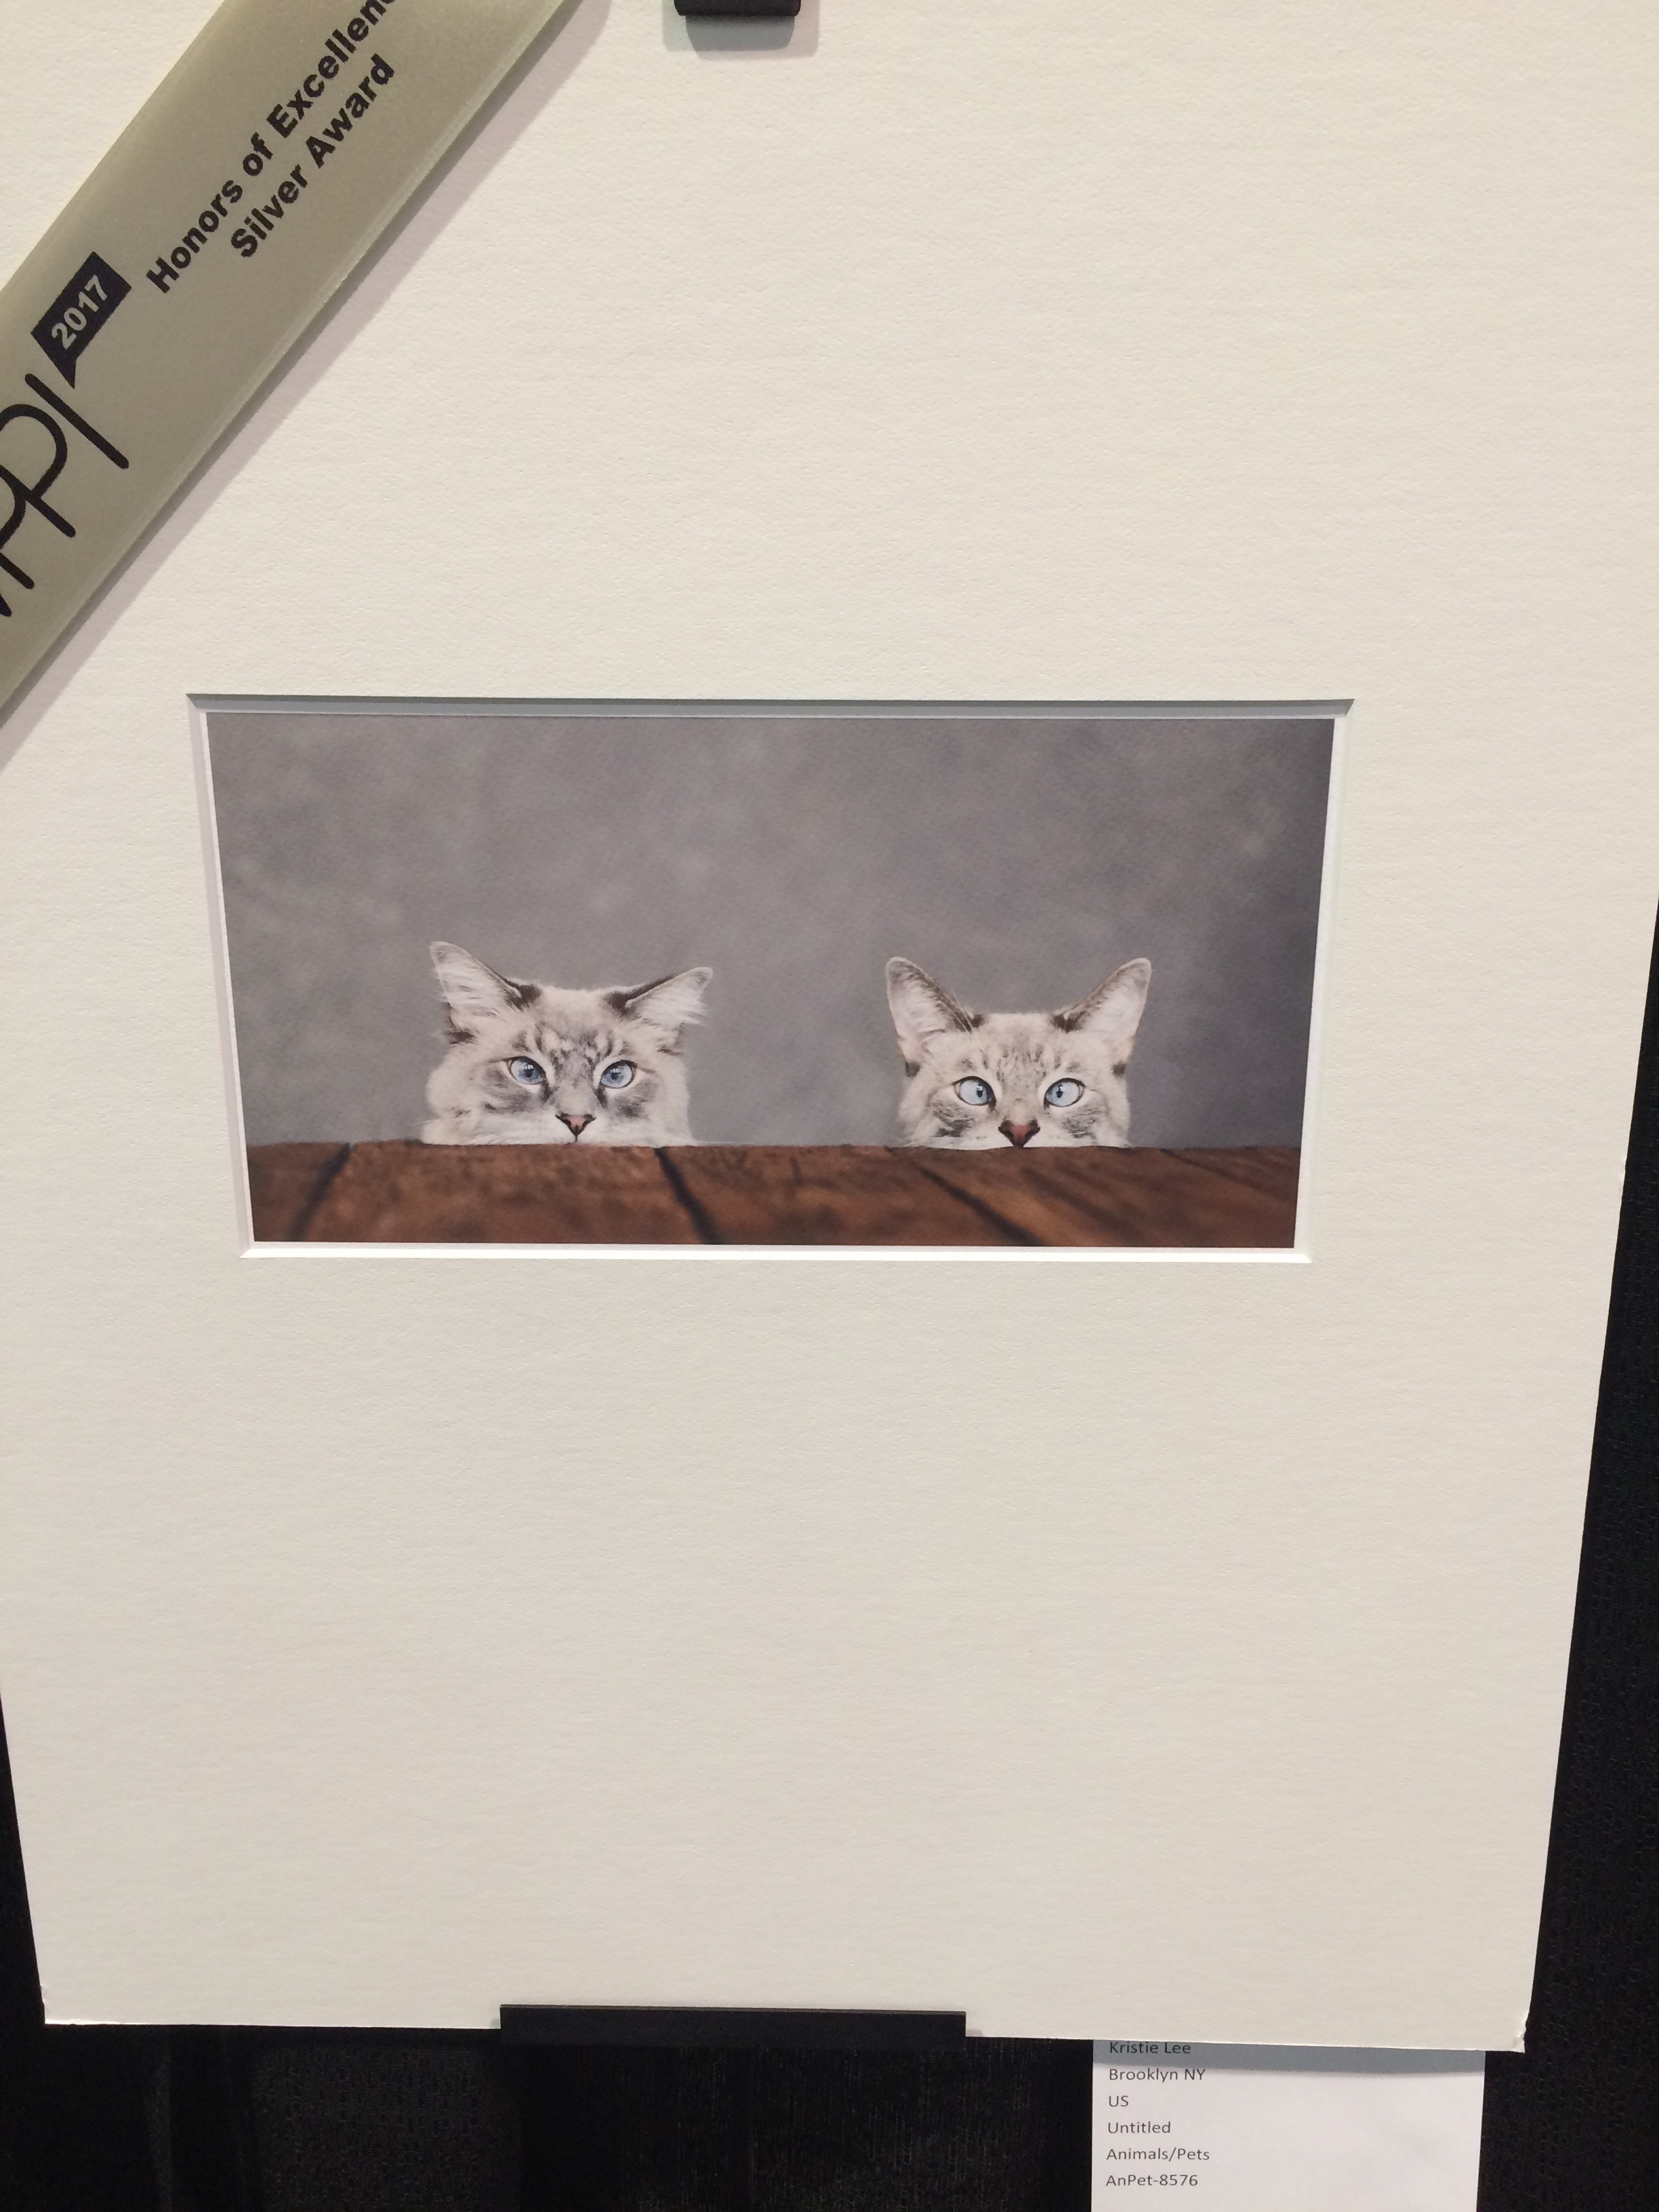 It's not all wedding and portrait photography at the Expo - there were even cat prints!